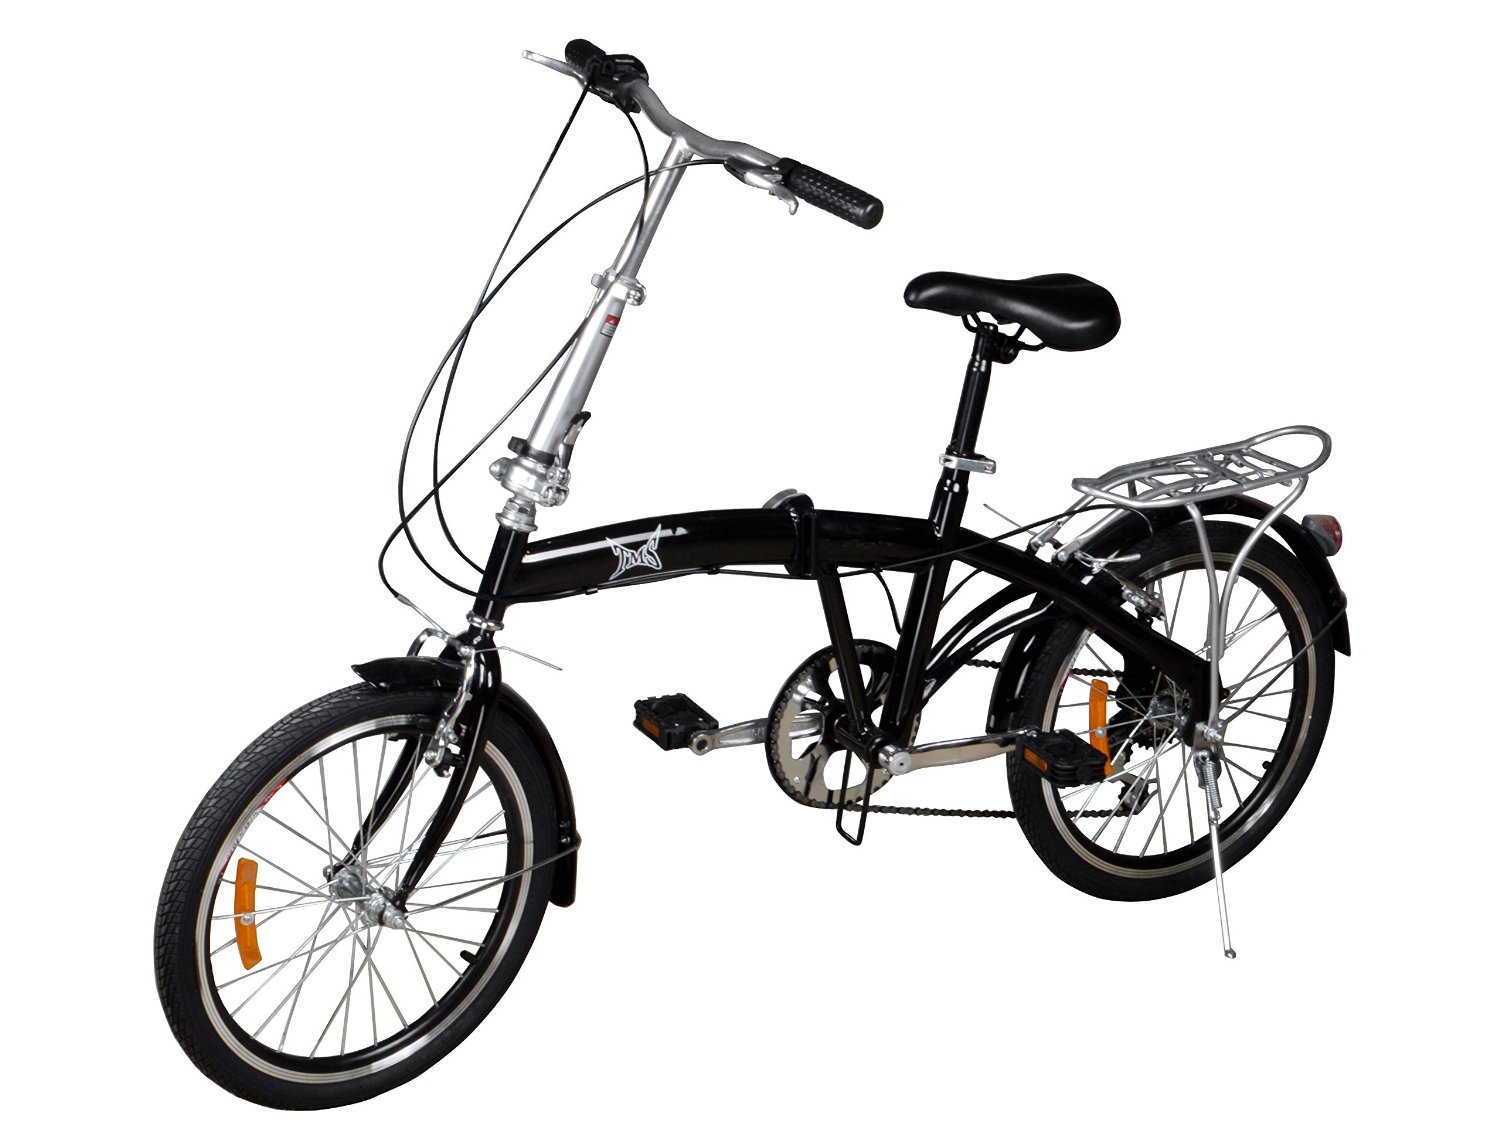 Top 10 Best Folding Bikes Reviews in 2020 9